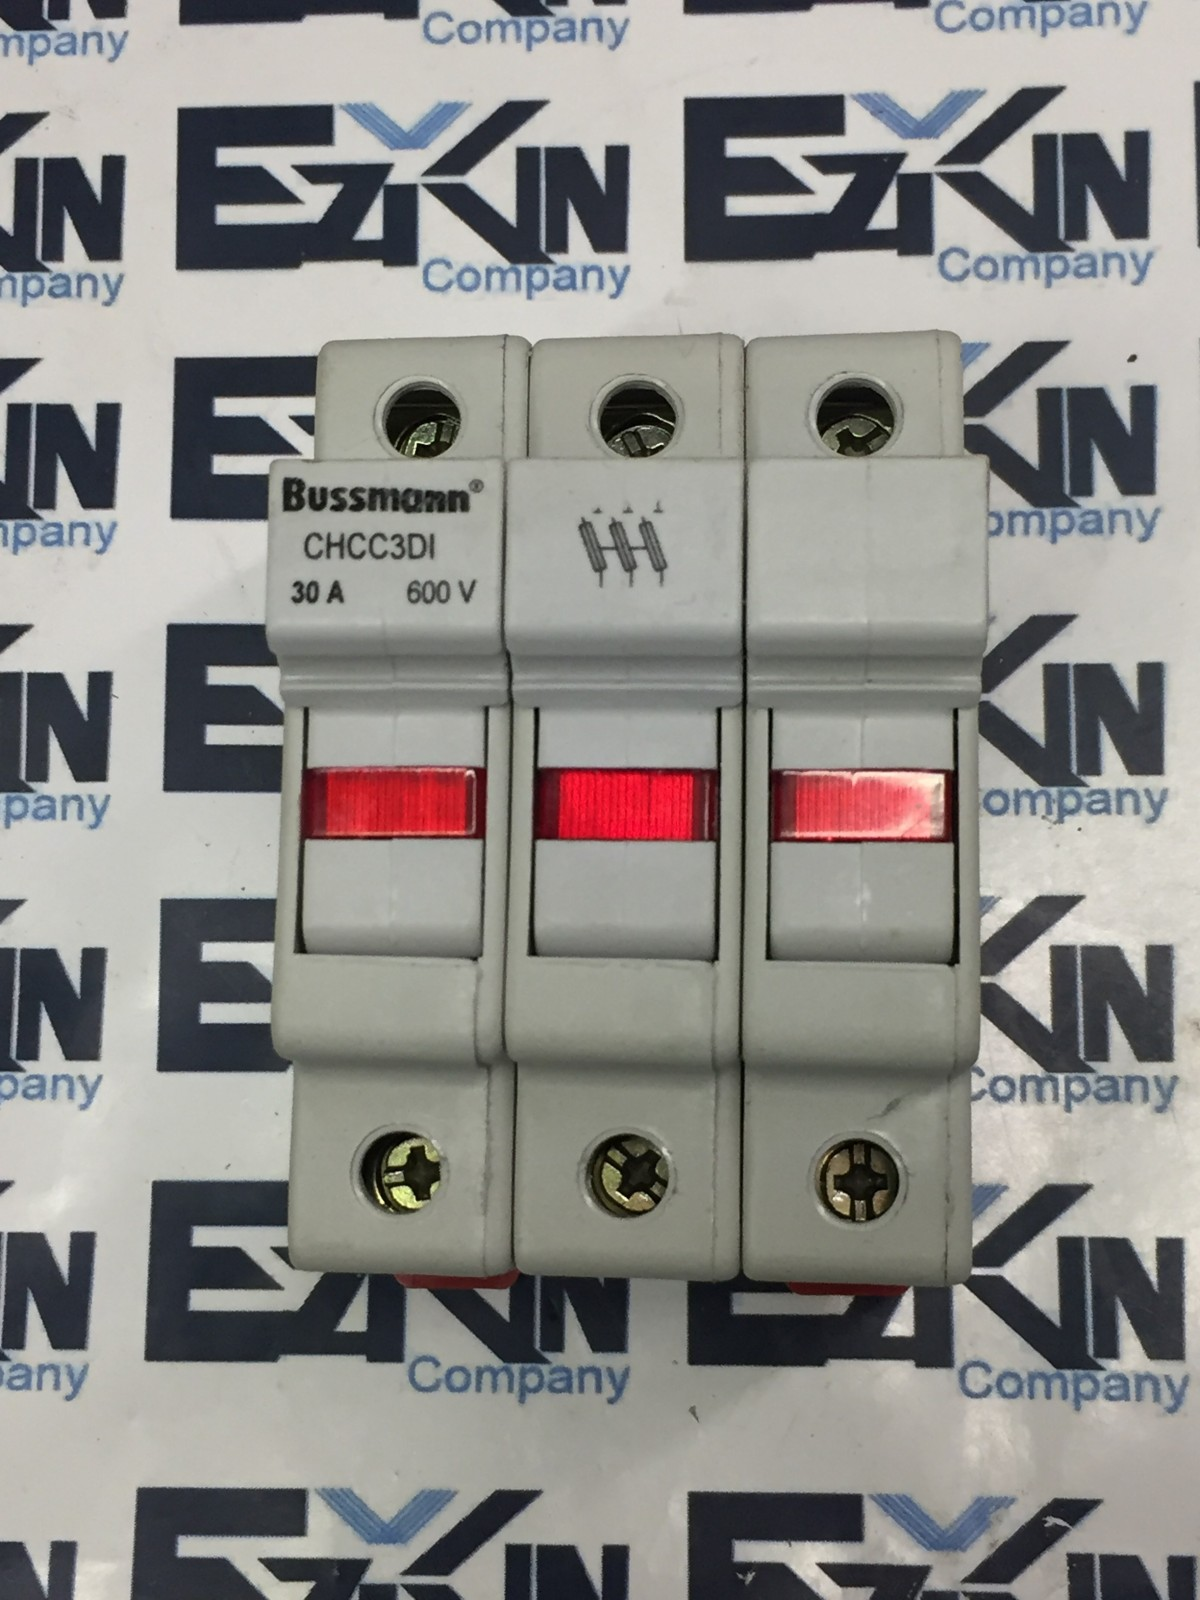 CHCC3DI Bussmann 30 A 600 V Fuse Holder 3Pole